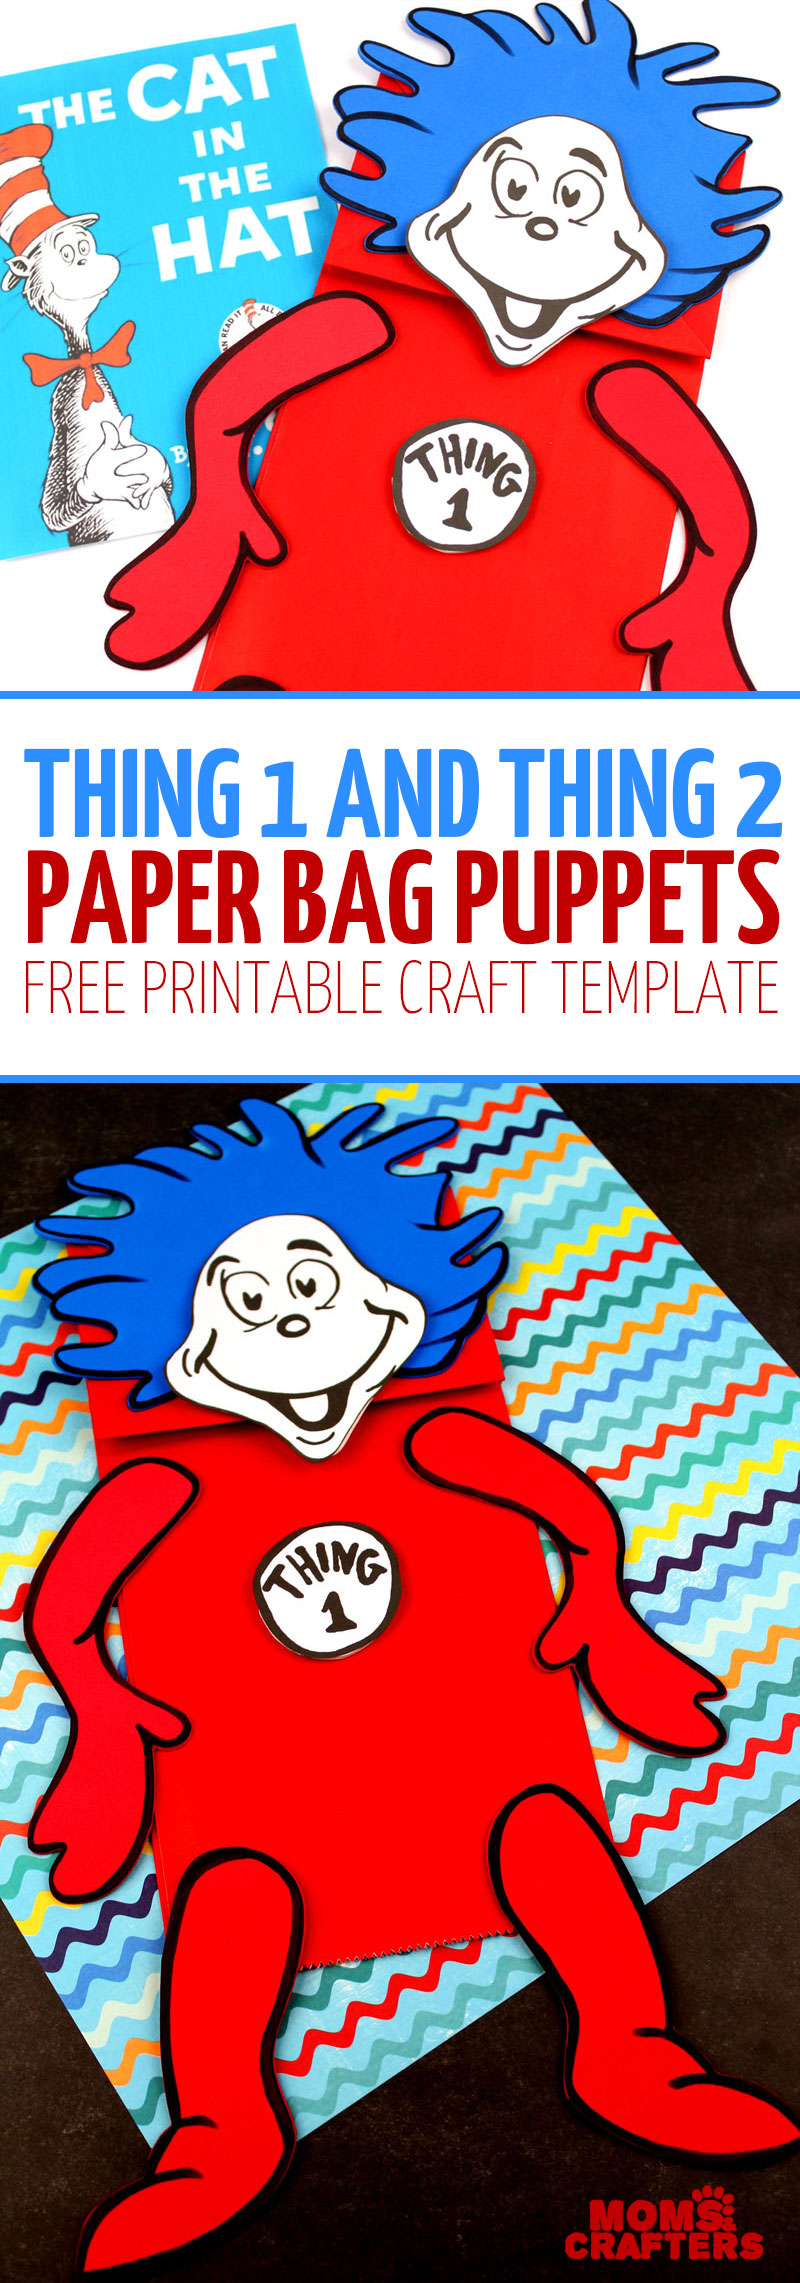 These adorable Thing 1 and Thing 2 puppets are made using a free printable template, craft foam or card stock, lunch bags and that's it! It's the perfect Dr. Seuss Kids craft to go with the book the Cat in the Hat. #literacy #kidscrafts #drseuss